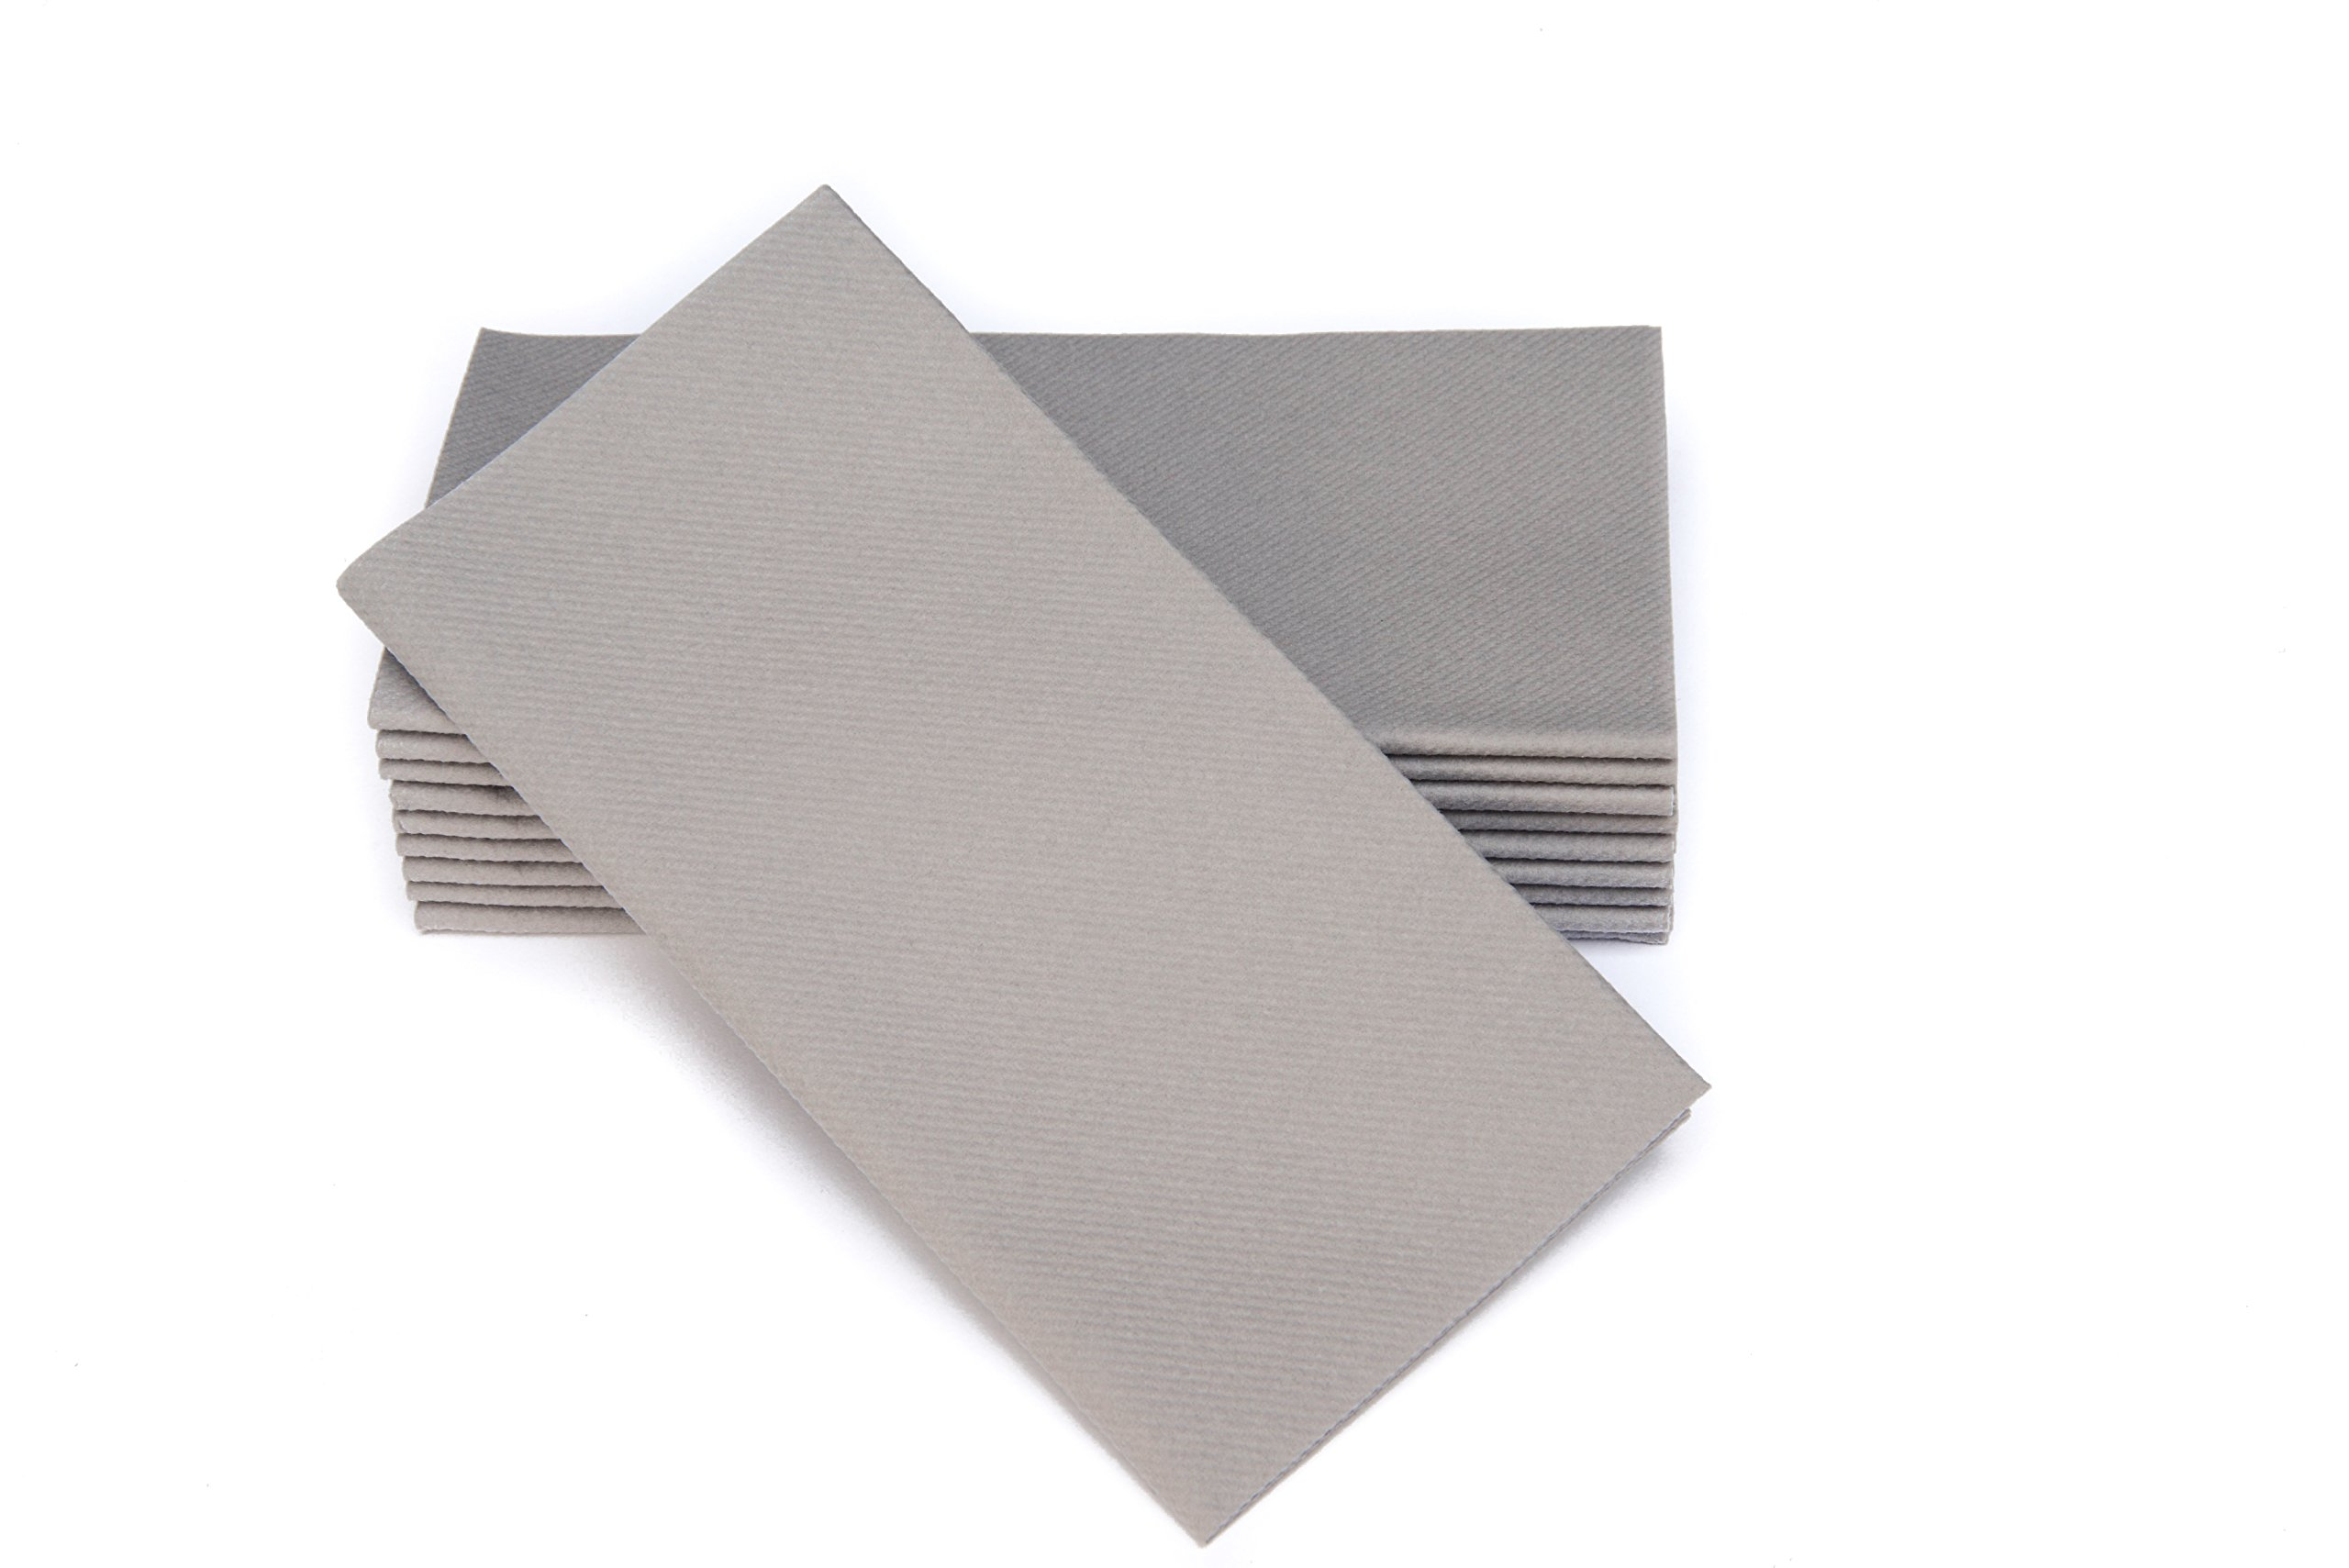 """Simulinen Dinner Napkins – Disposable, Gray, Cloth-Like – Elegant, Yet Heavy Duty Soft, Absorbent & Durable – 16""""x16"""" – Box of 50"""